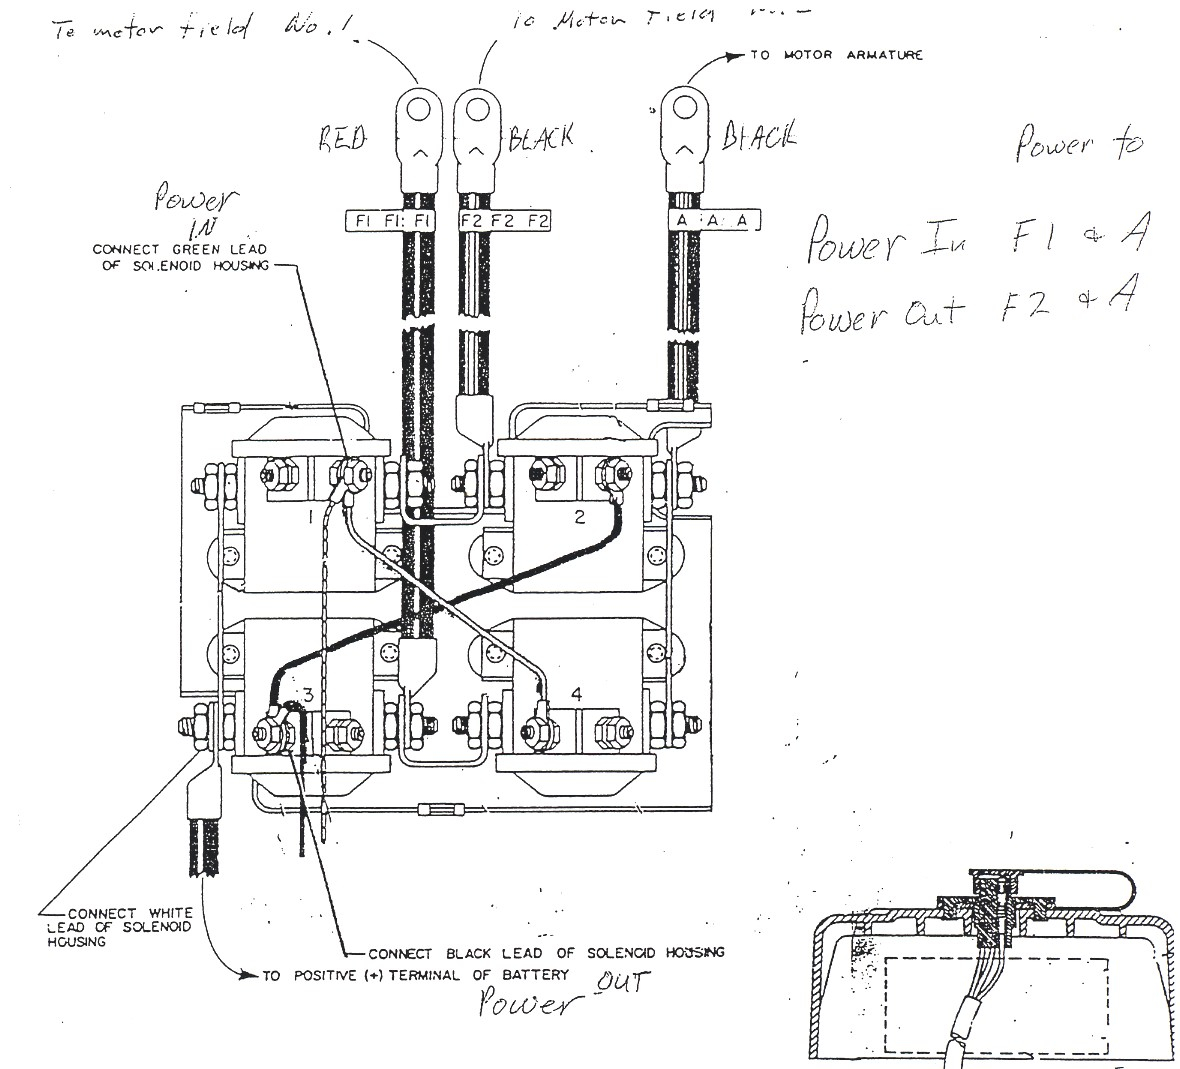 For Atv Winch Wiring Relay | Wiring Diagram - Warn Winch Wiring Diagram